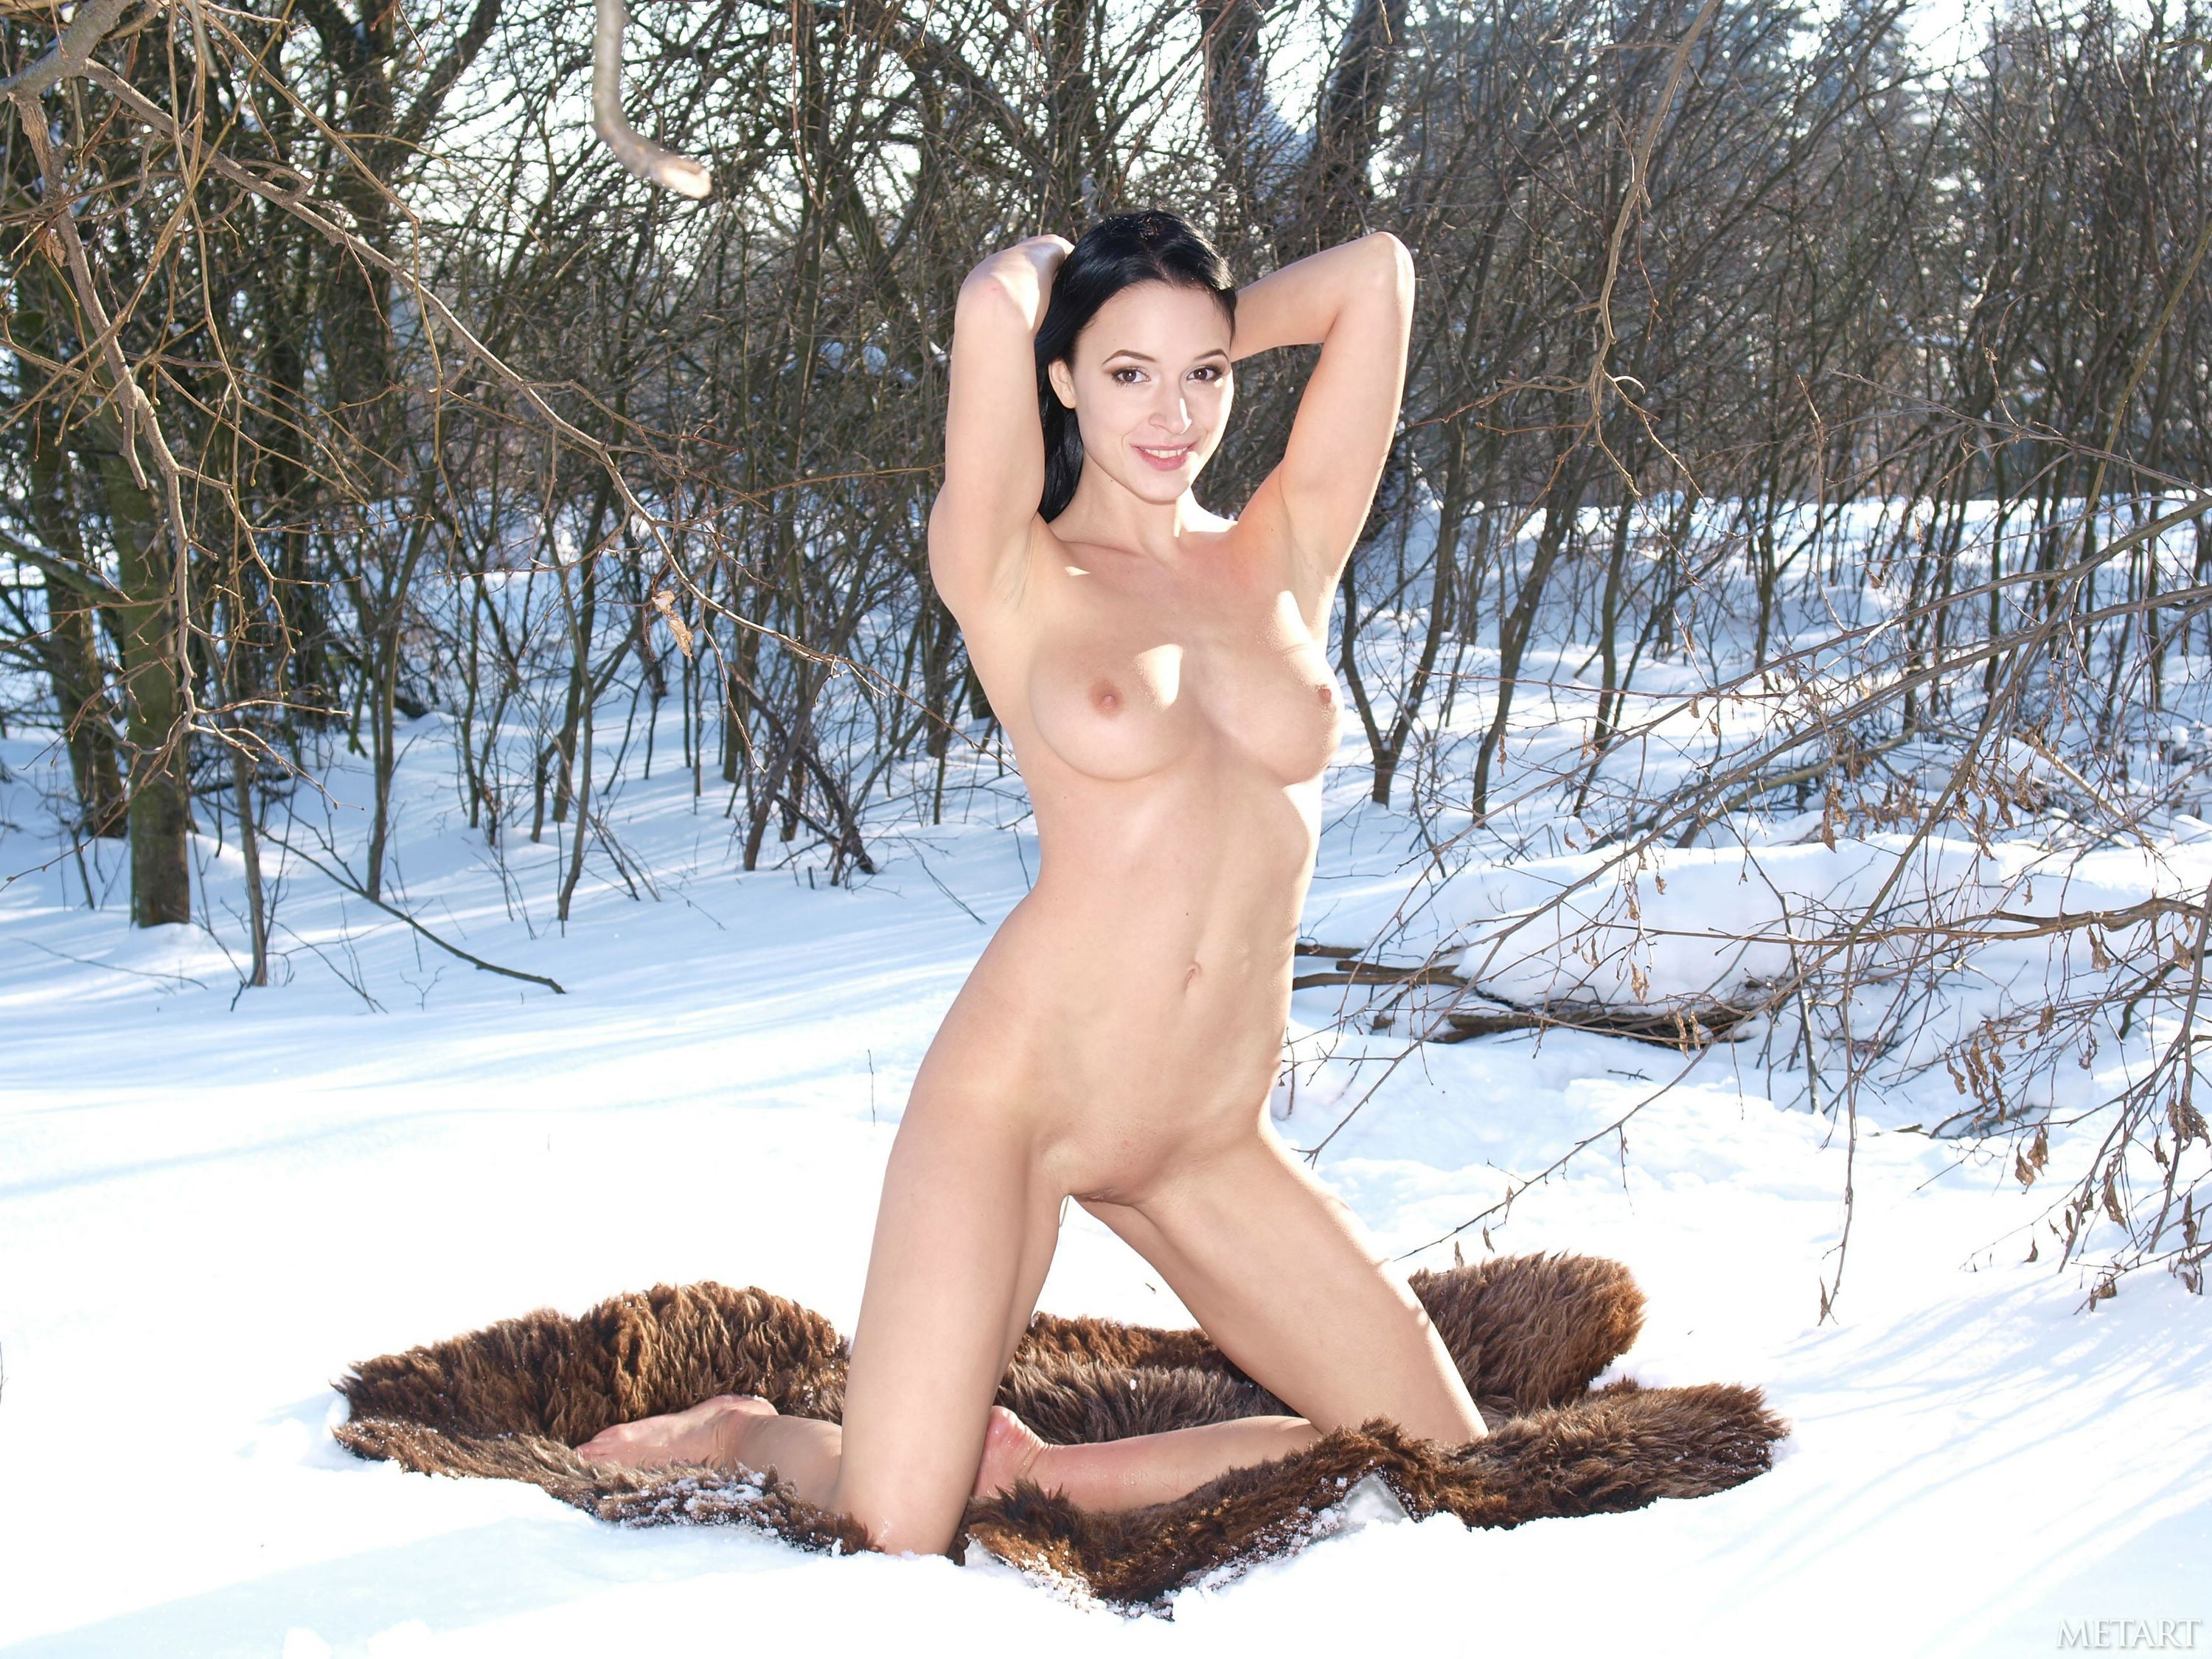 Sofia Naked In The Snow Showing Those Big Boobs And That Hairy Pussy